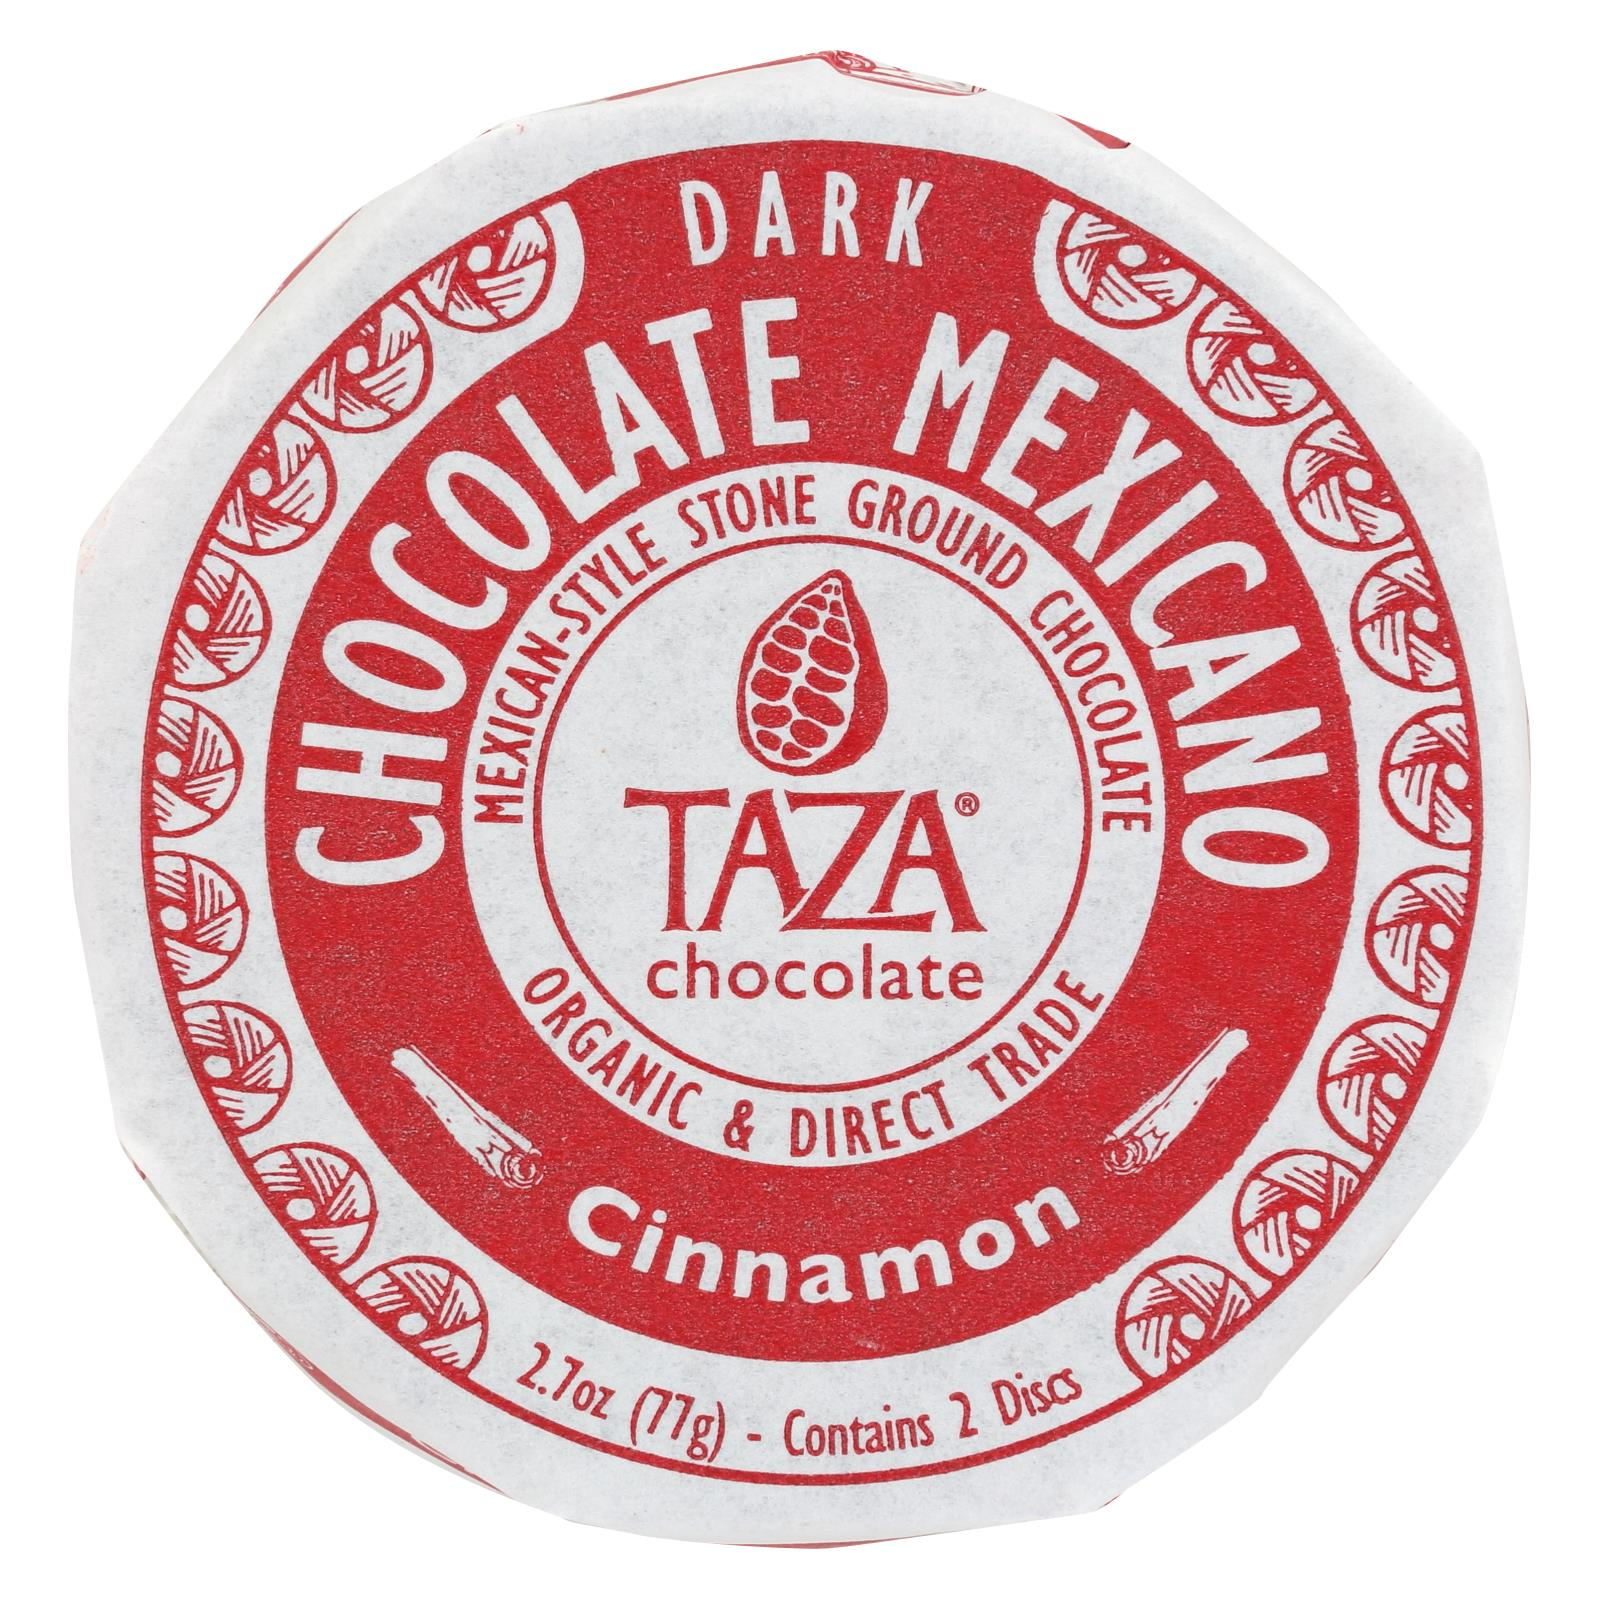 Taza Chocolate Organic Chocolate Mexicano Discs 50 Percent Dark Chocolate Cinnamon 2.7 Oz Case Of 12 HG1575109